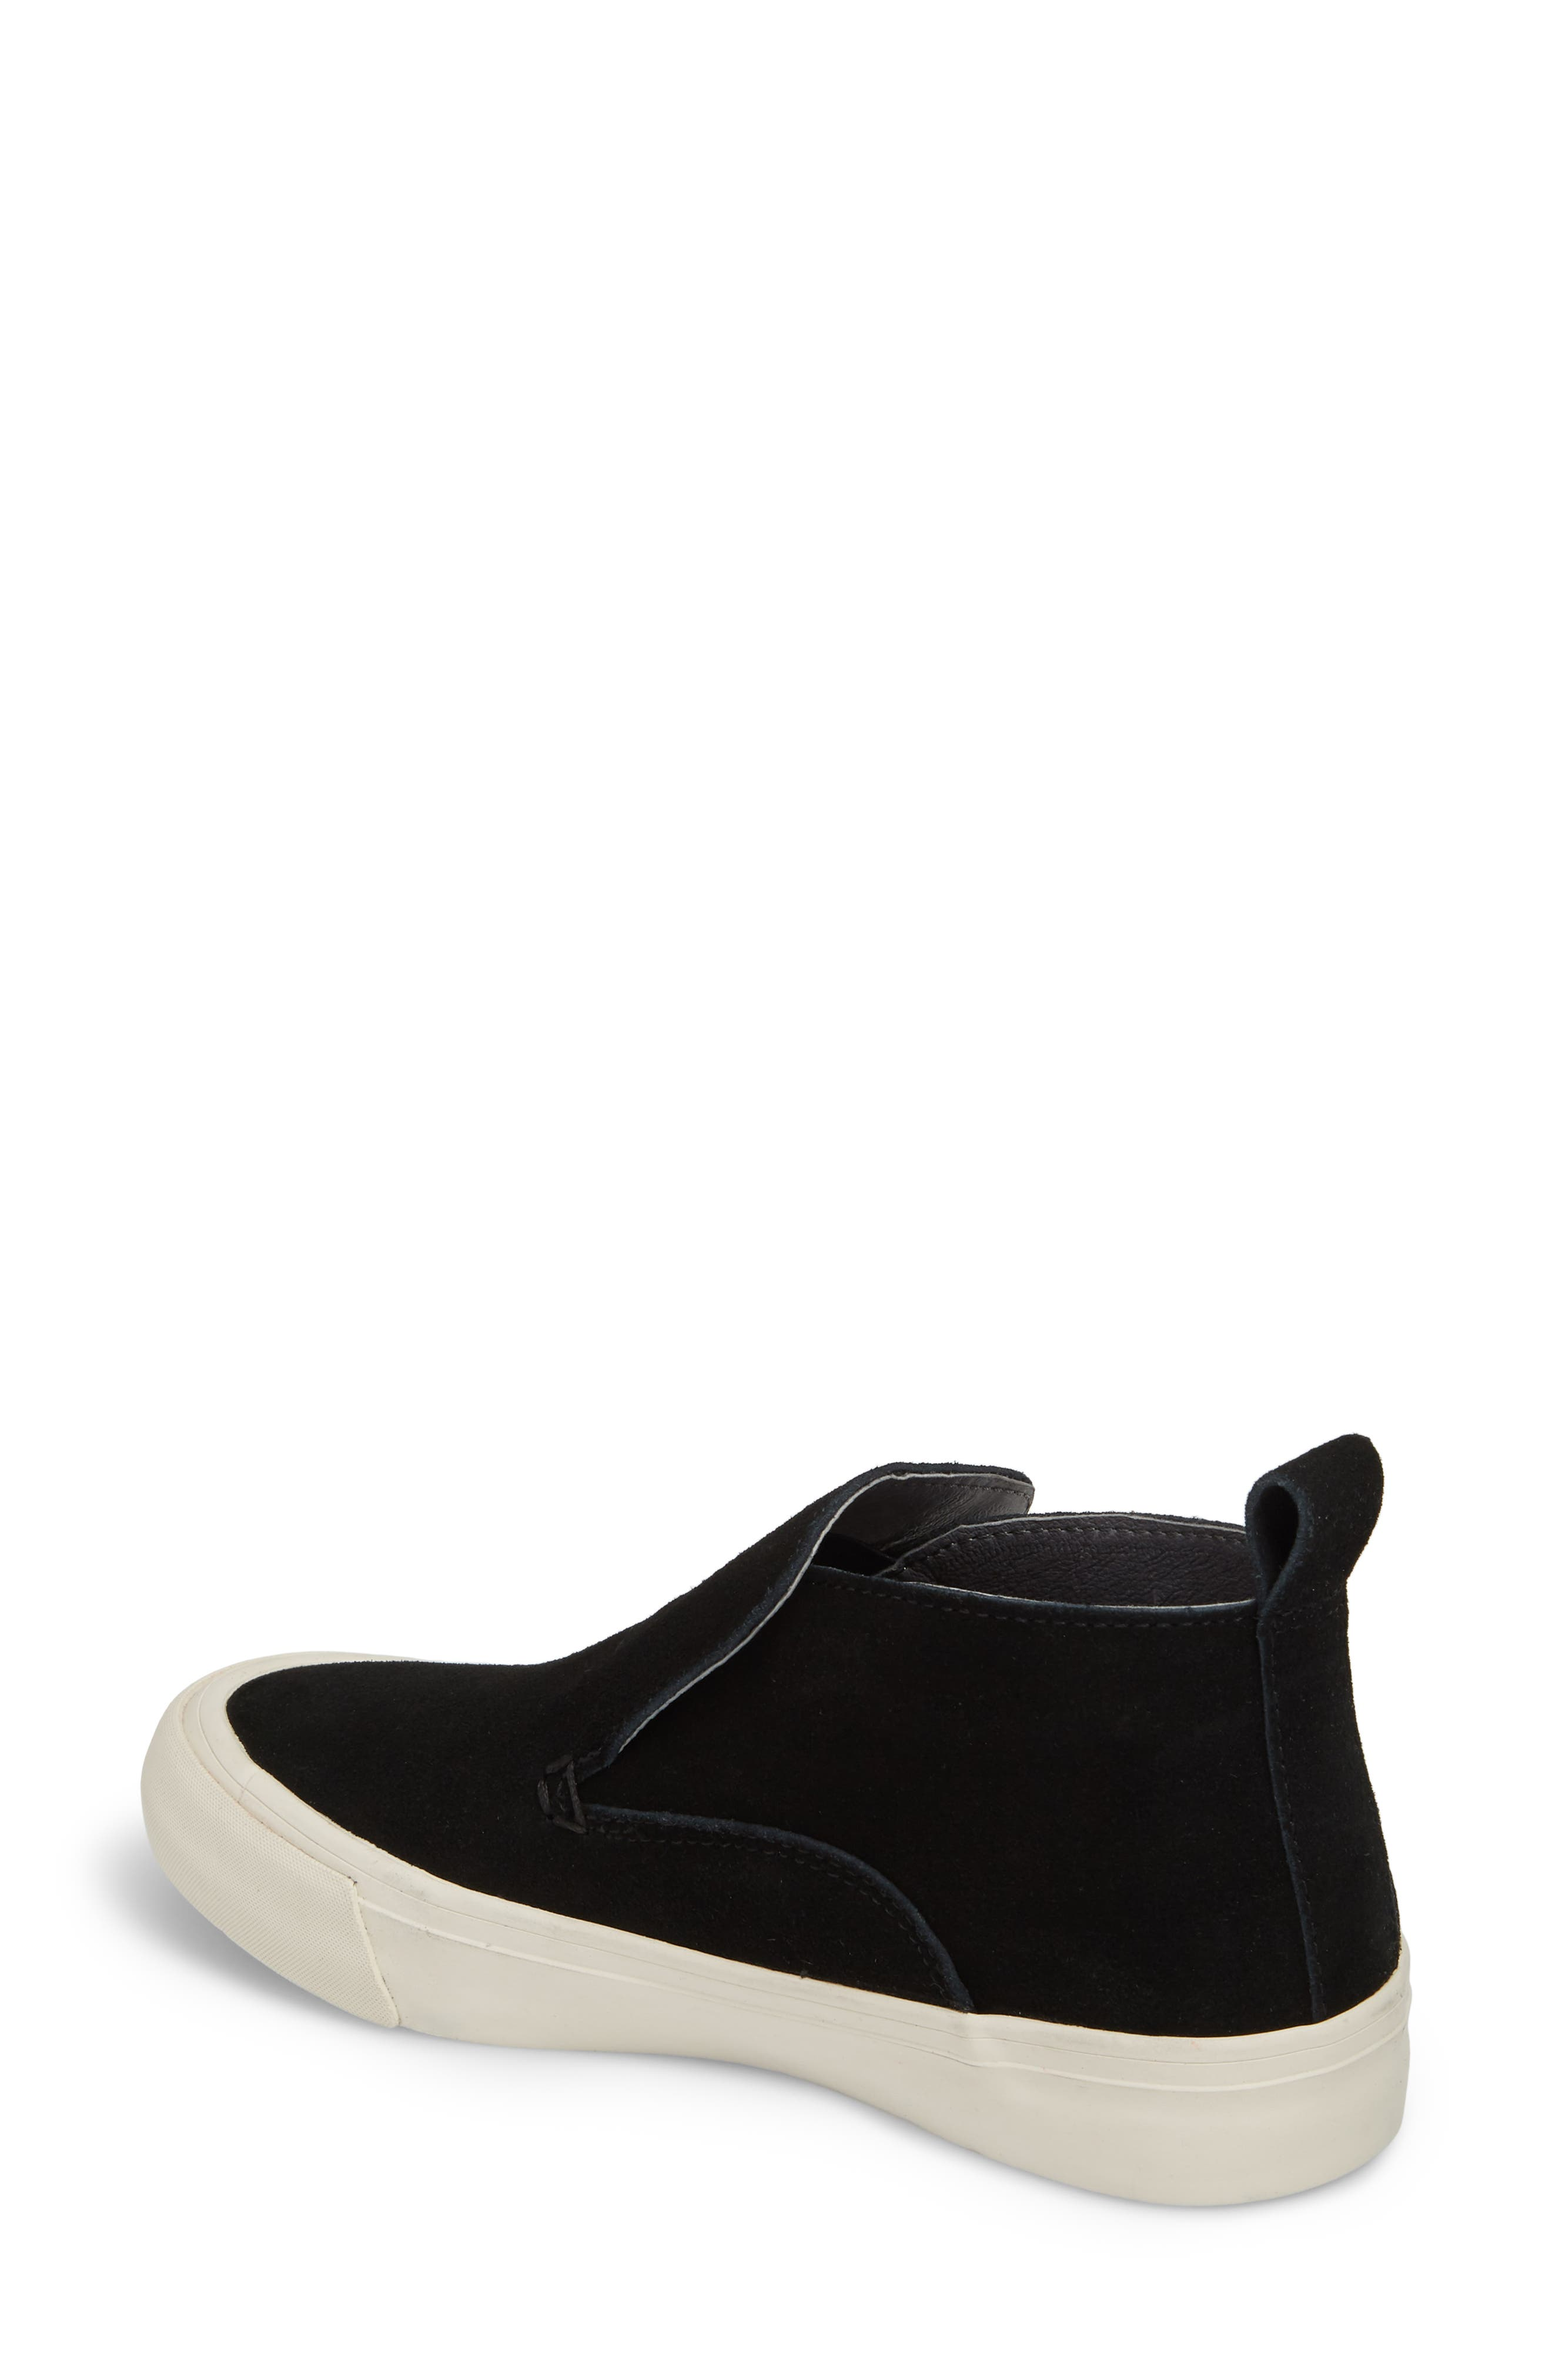 27301a4f90fd8 Women's Shoes Sale | Nordstrom